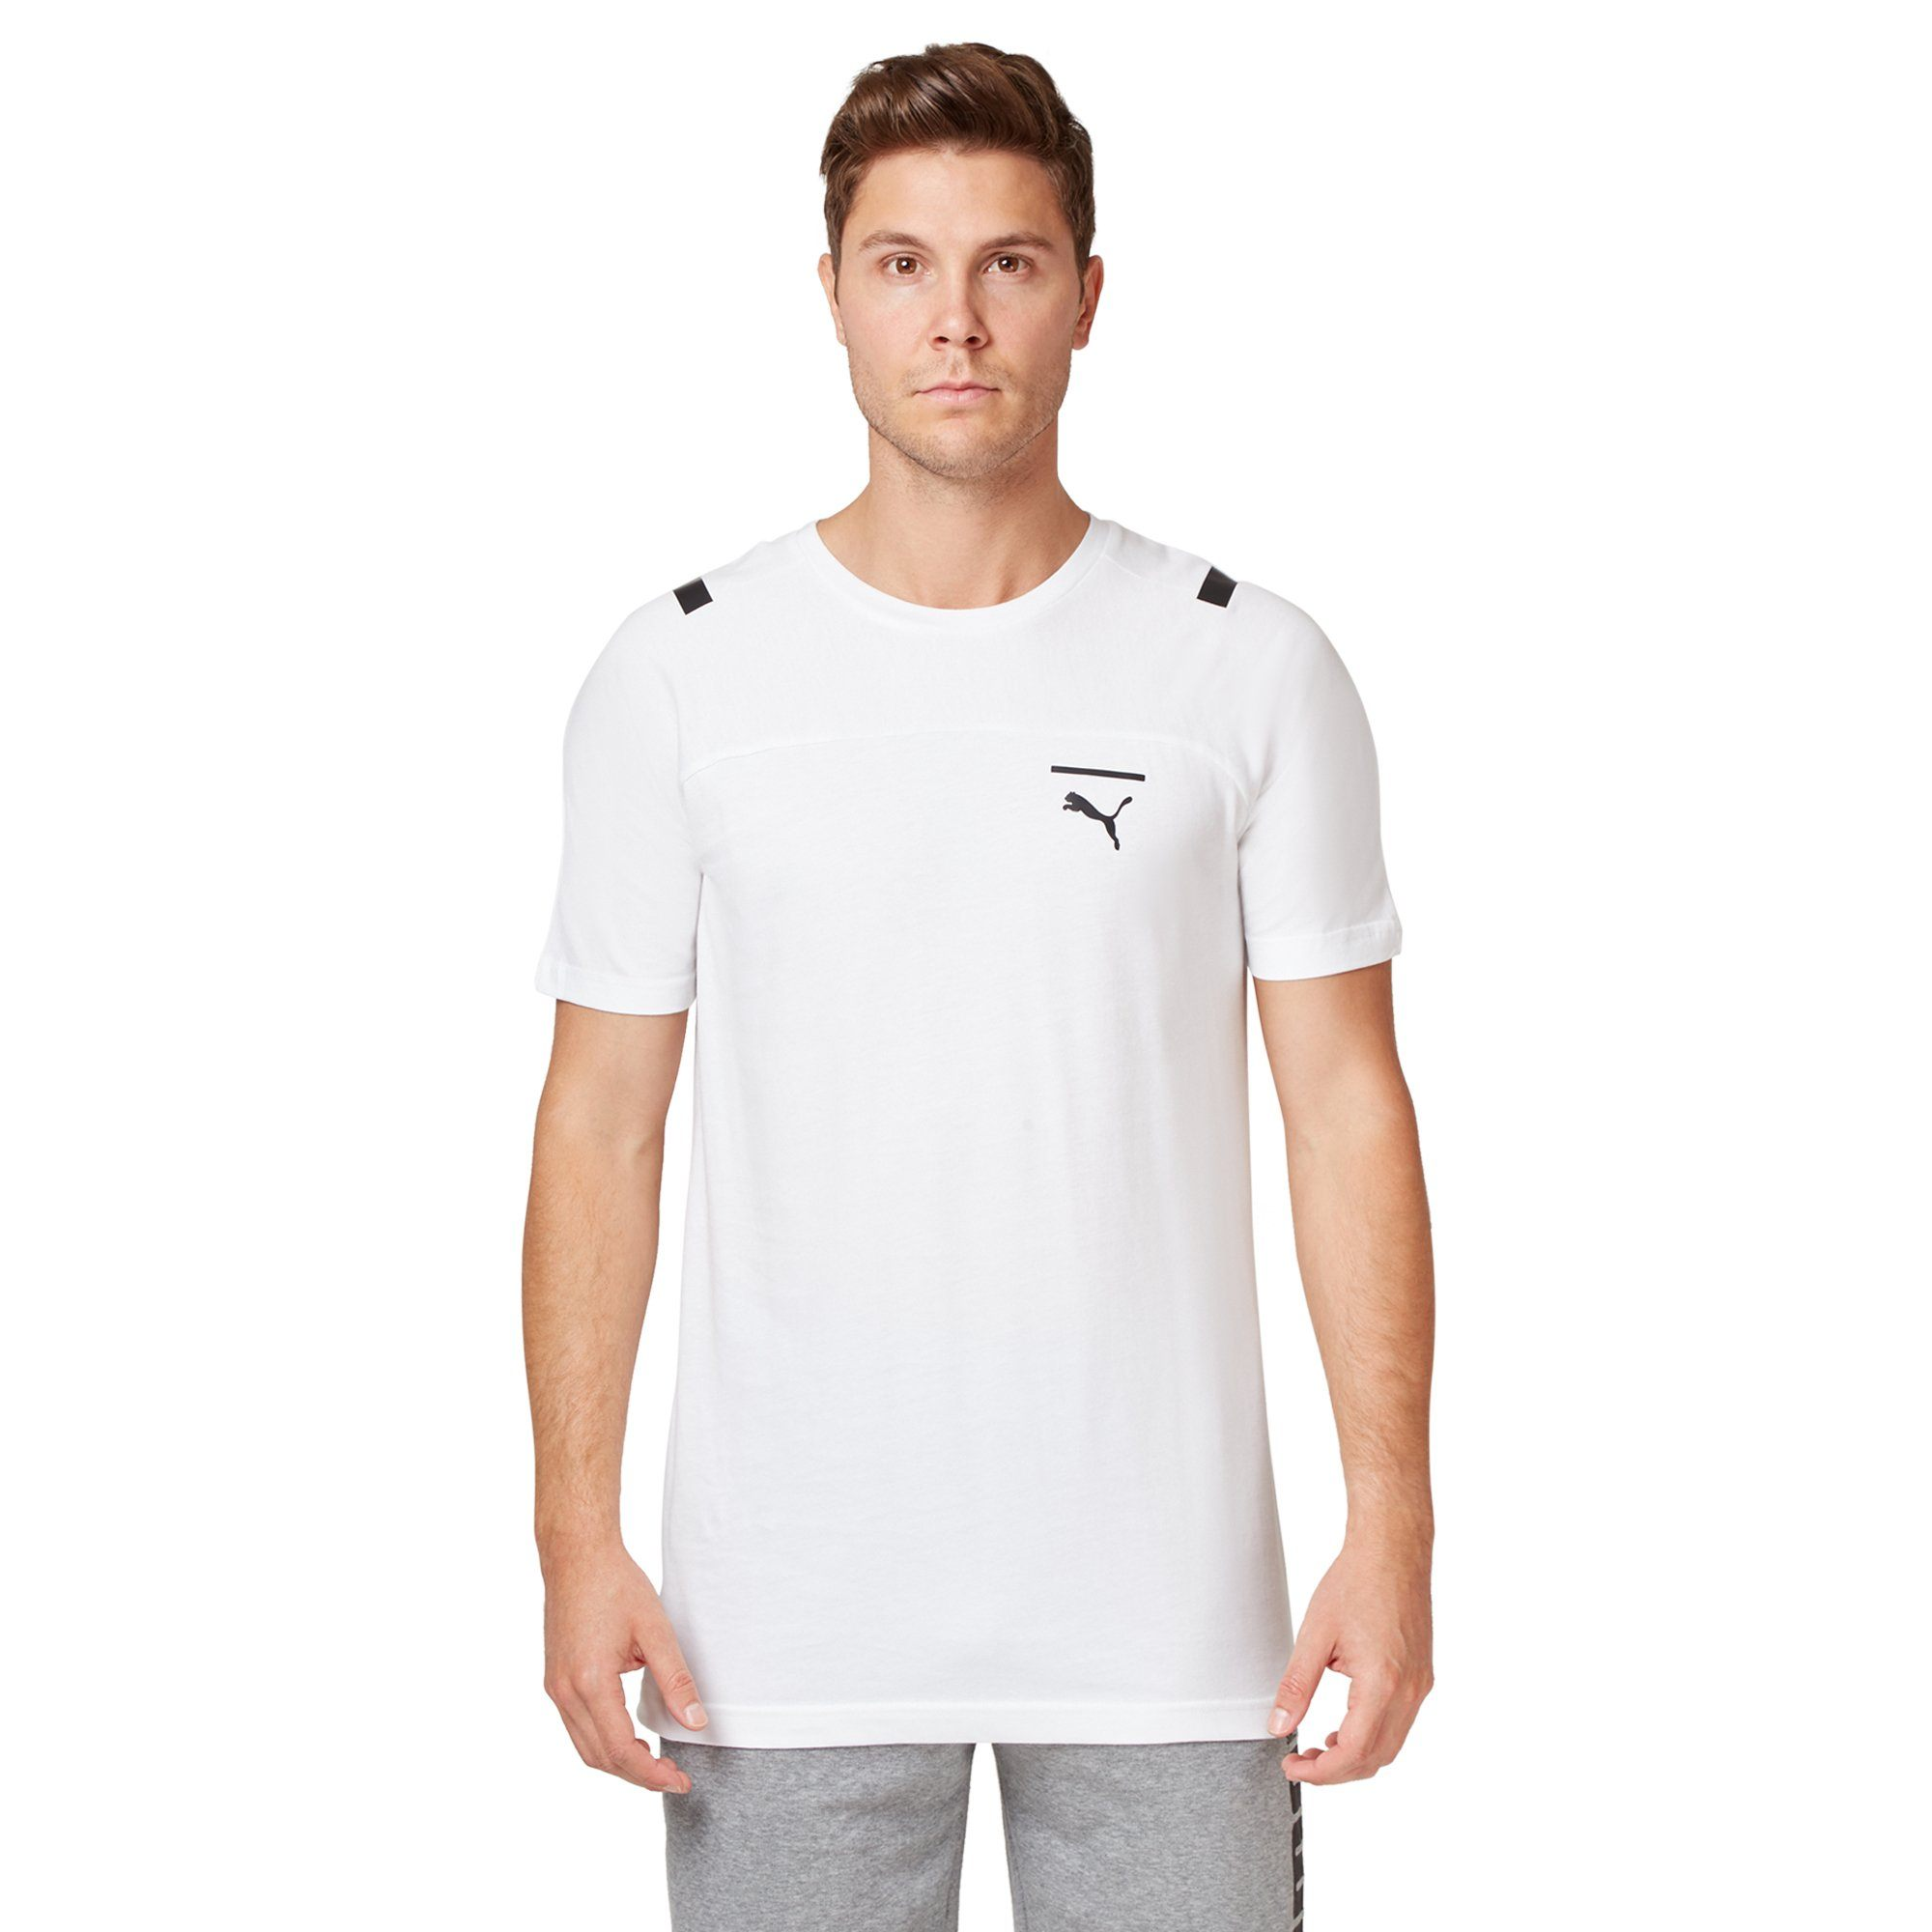 Puma Men's Pace Tee - White Apparel Puma